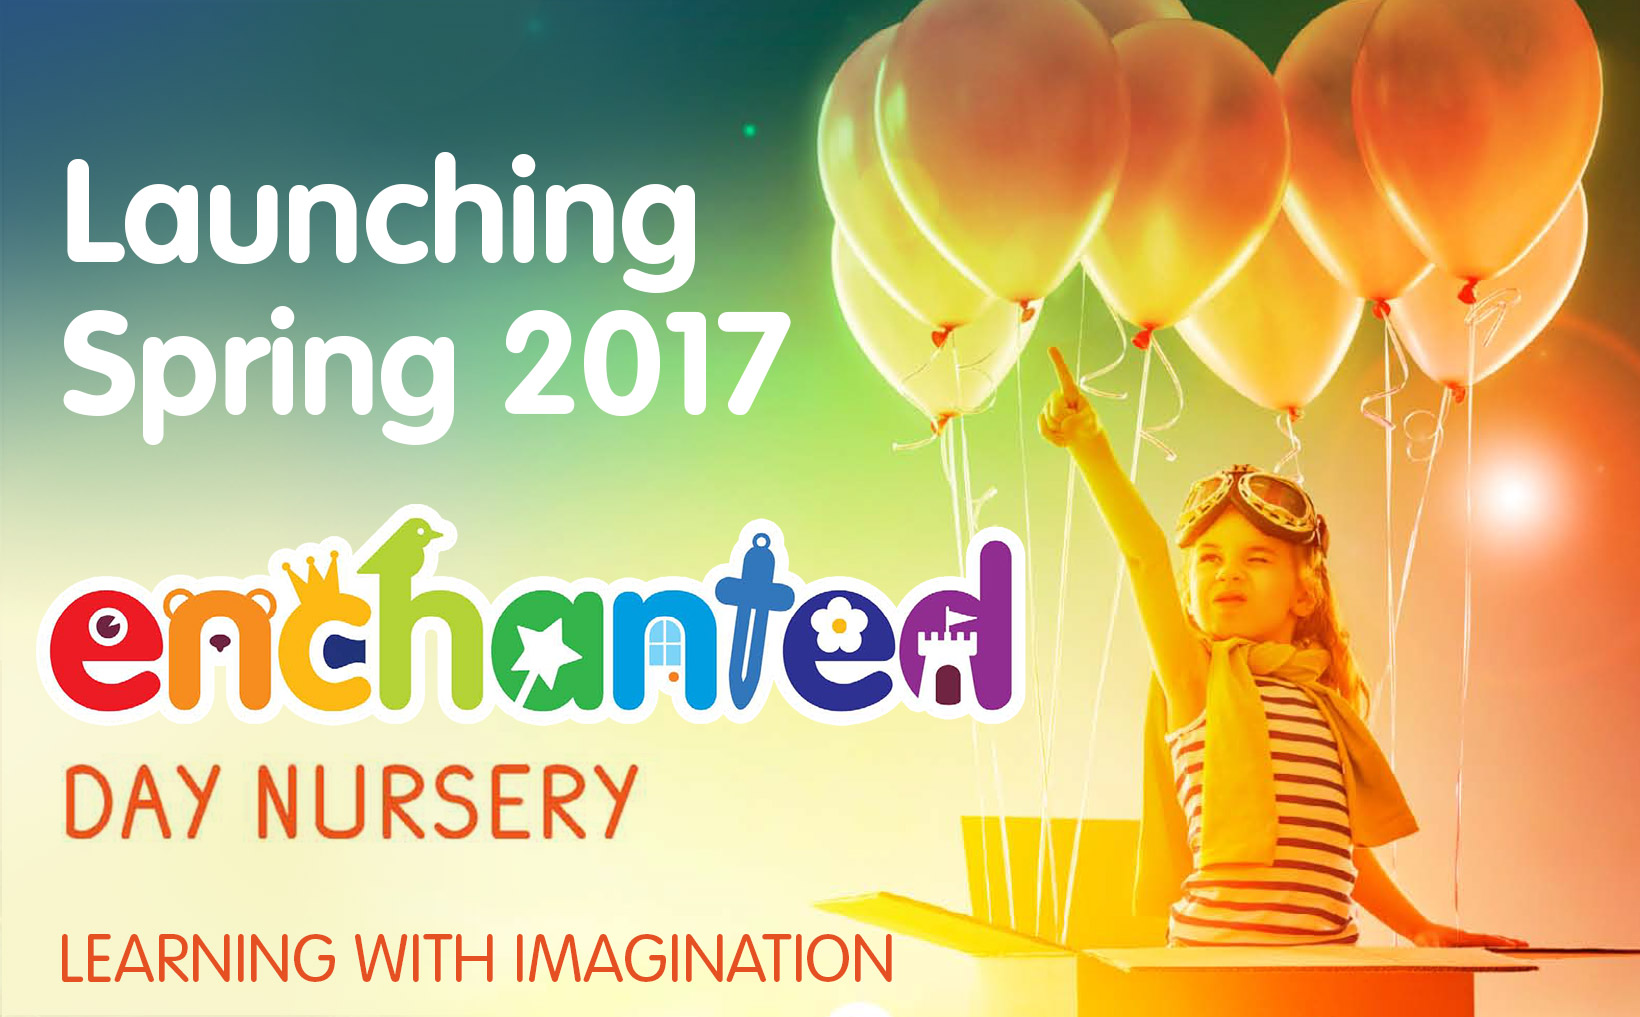 enchanted-nursery